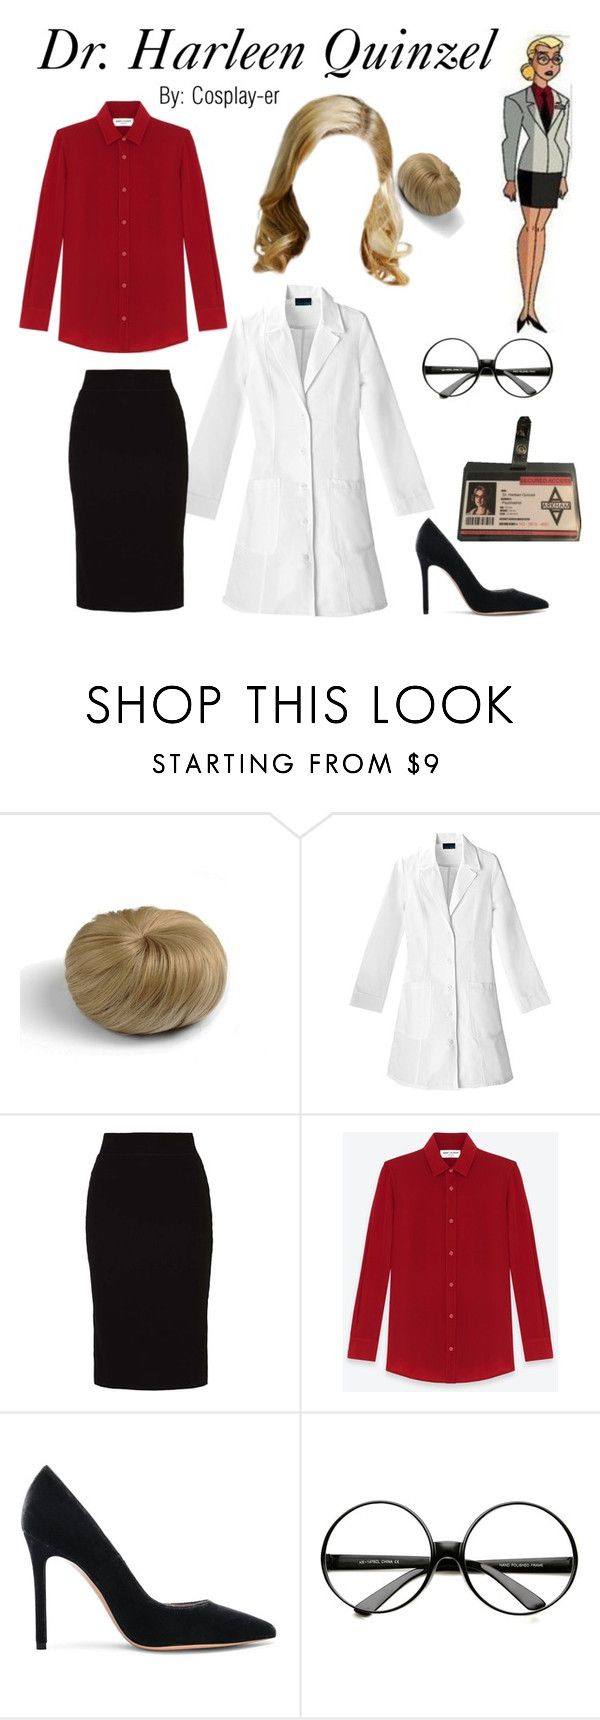 """""""Dr. Harleen Quinzel"""" by cosplay-er ❤ liked on Polyvore featuring even&odd, Yves Saint Laurent, Gianvito Rossi and ZeroUV"""